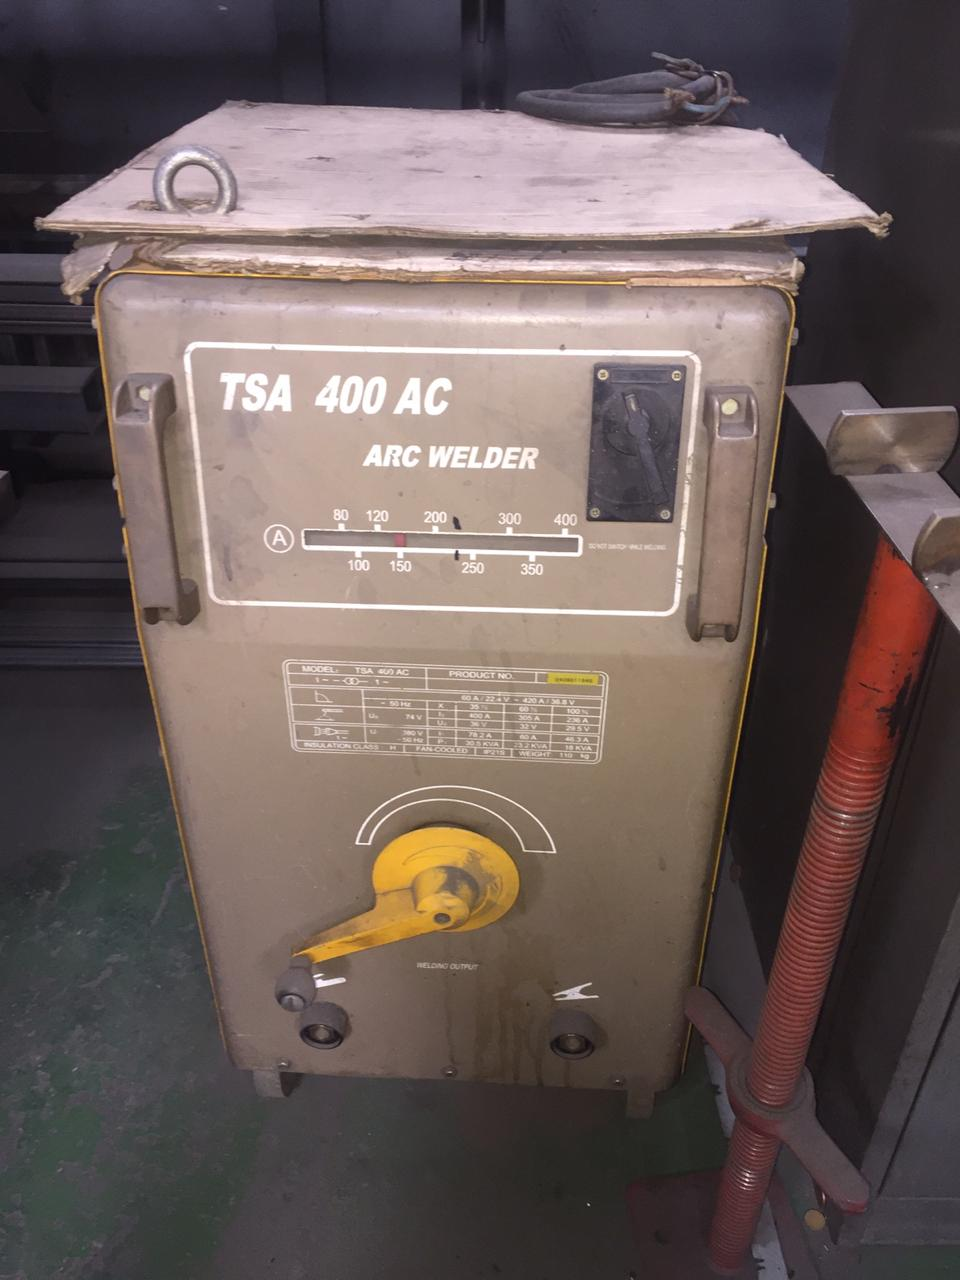 Thermamax TSA 400 AC ARC welder transformer